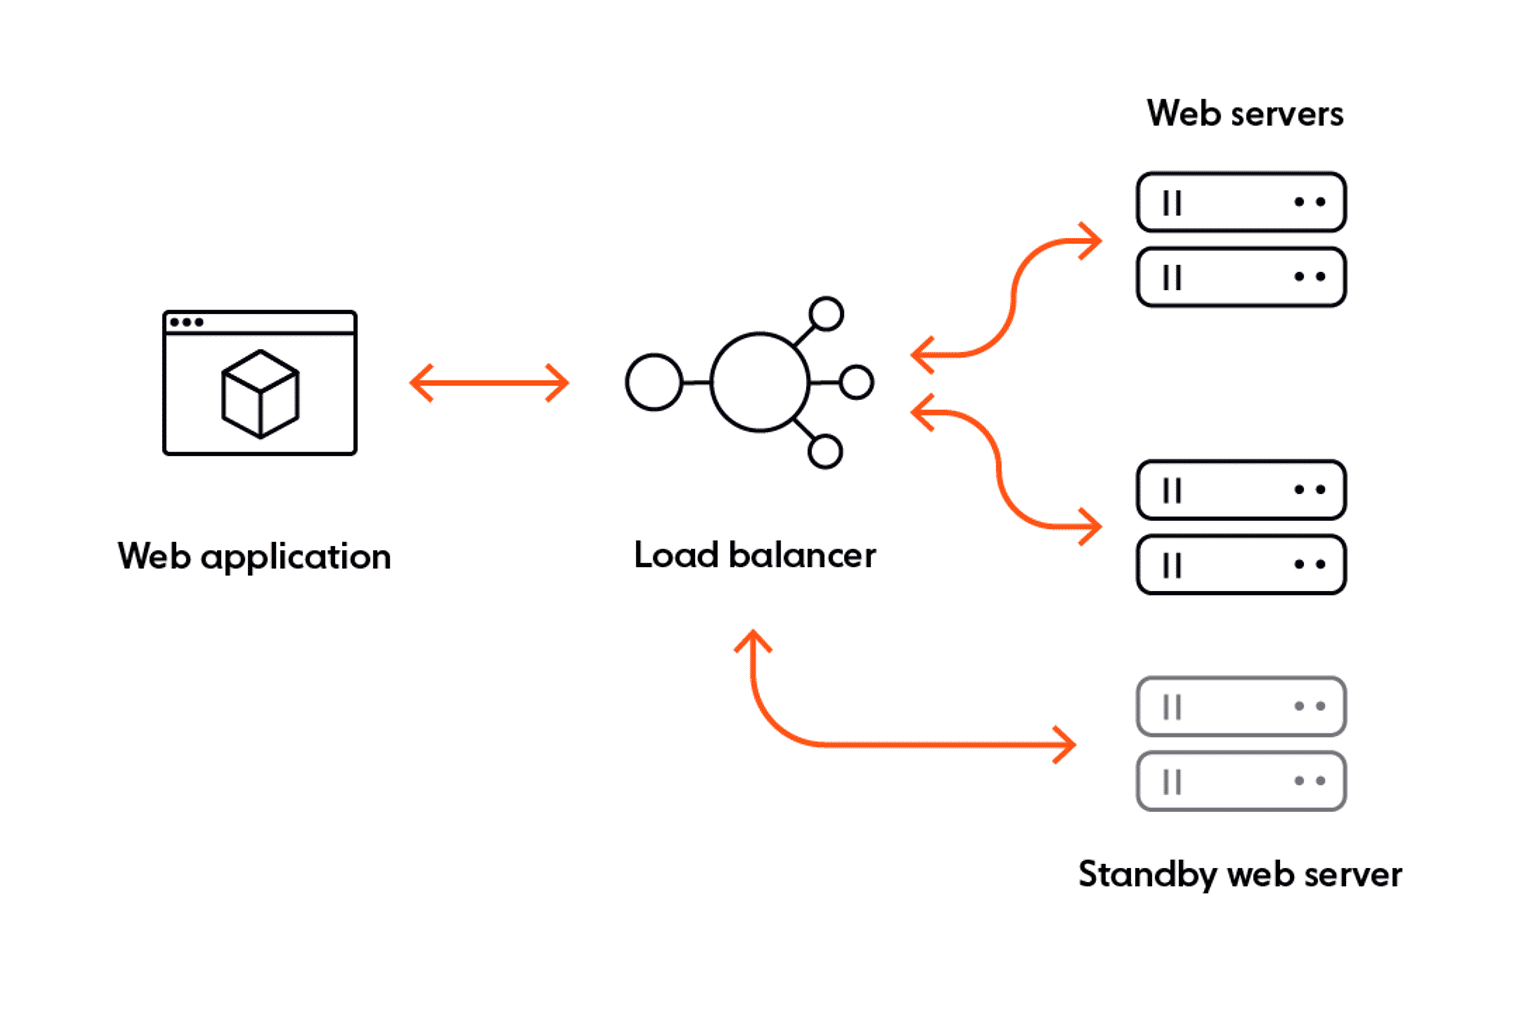 An example of a fault-tolerant design